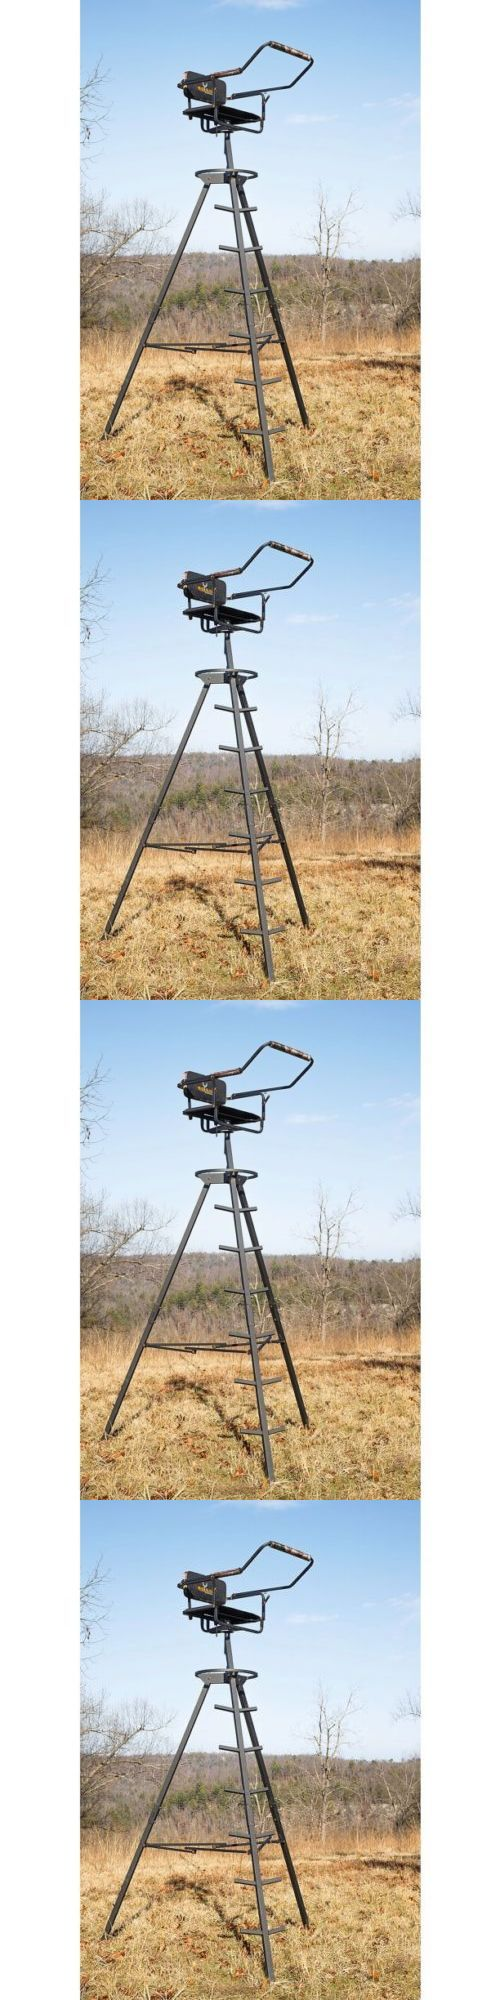 Tree Stands 52508: Deer Hunting Ladder Stand Foldable Tripod 10 Portable Lightweight Hunt Swivel -> BUY IT NOW ONLY: $122.71 on eBay!